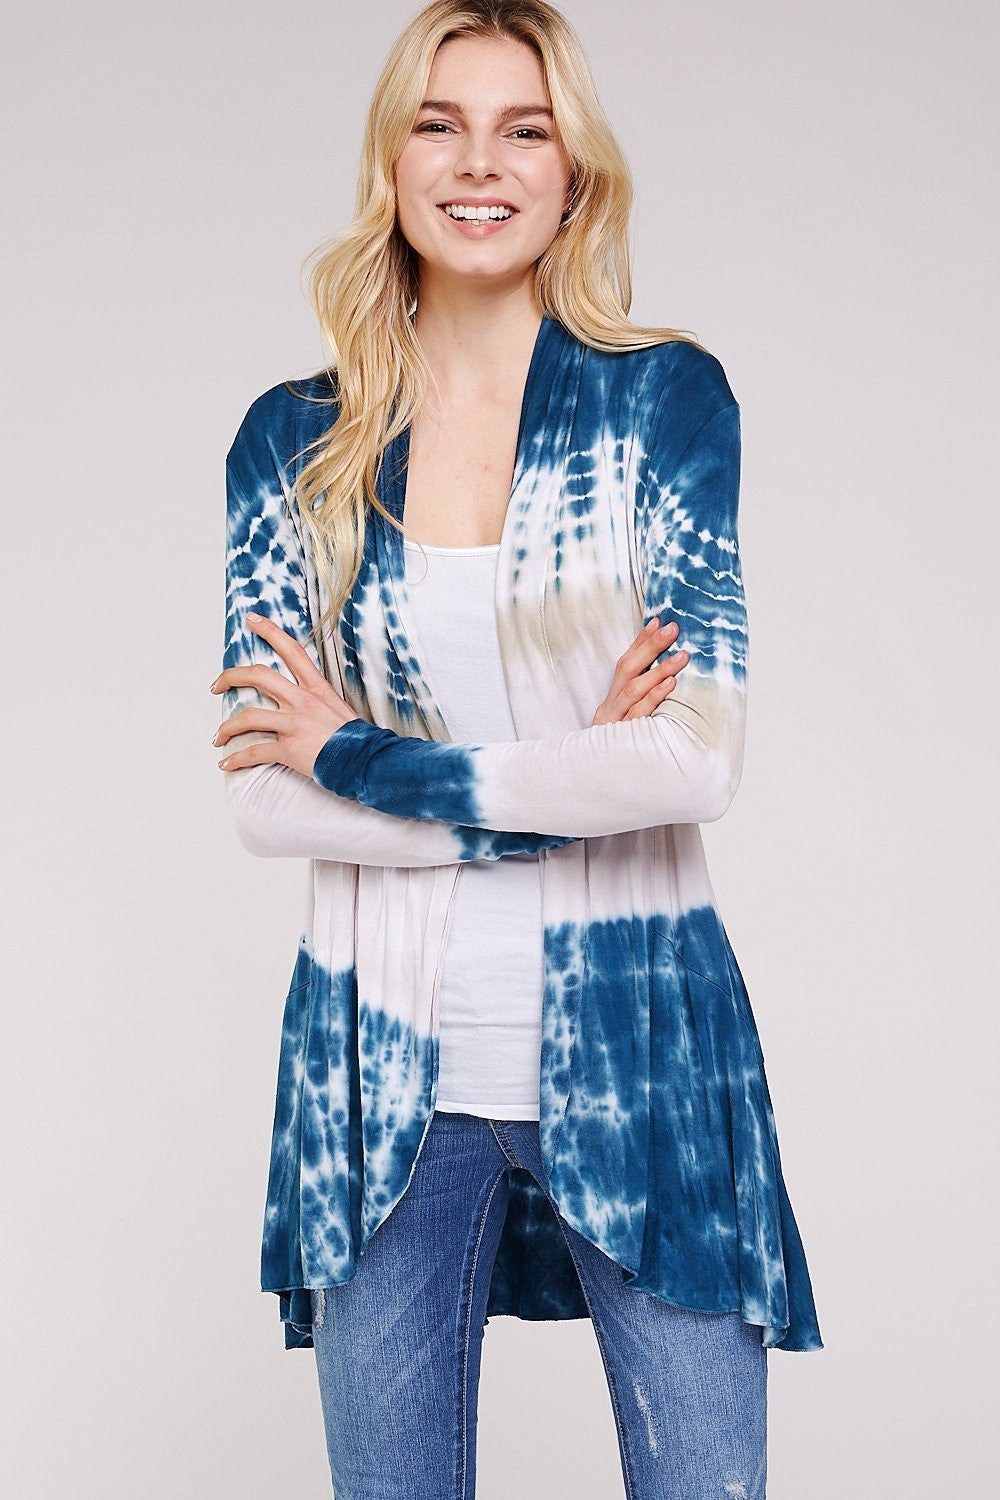 Wholesale Clothing, Online Wholesale Clothing, Women Clothing, Bohemian, Free People, tiedye, specialty wash, wholesale seller, wholesale women clothing shop, gypsy look, USA made, URBAN X APPAREL-CARDIGANS-UCR3004A, fashiontrend2019